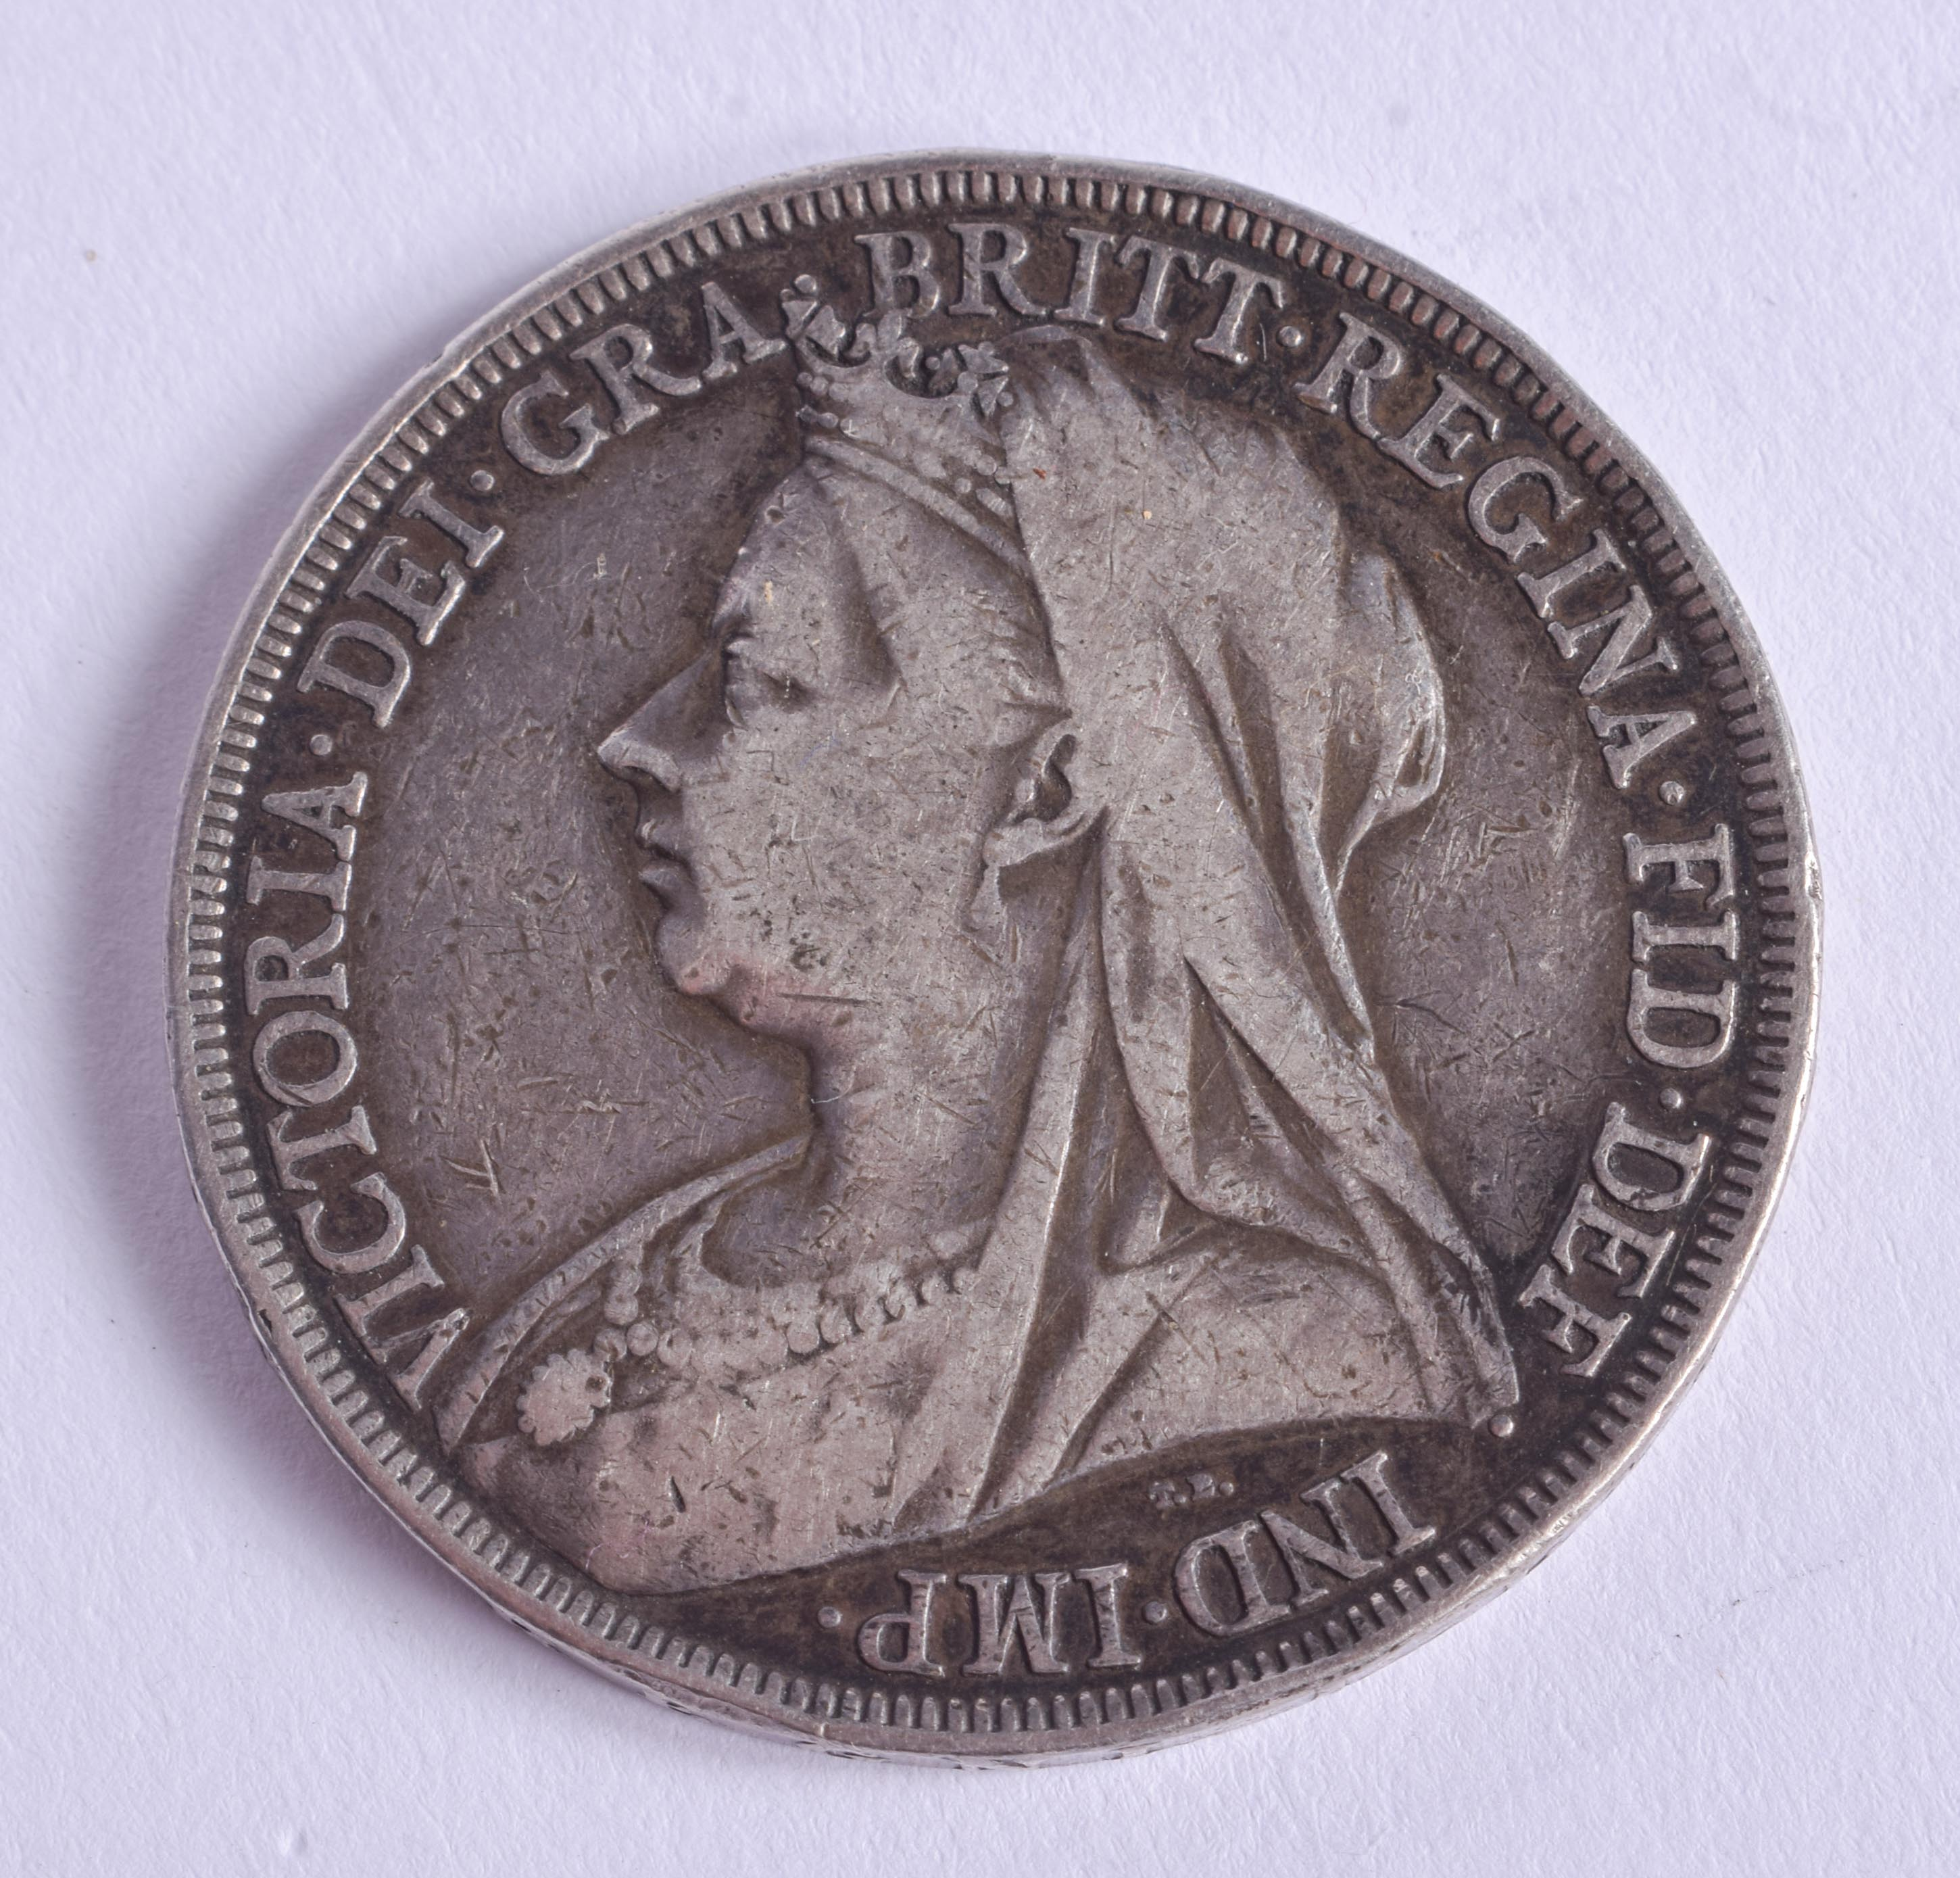 A VICTORIAN 1897 SILVER CROWN. - Image 2 of 2